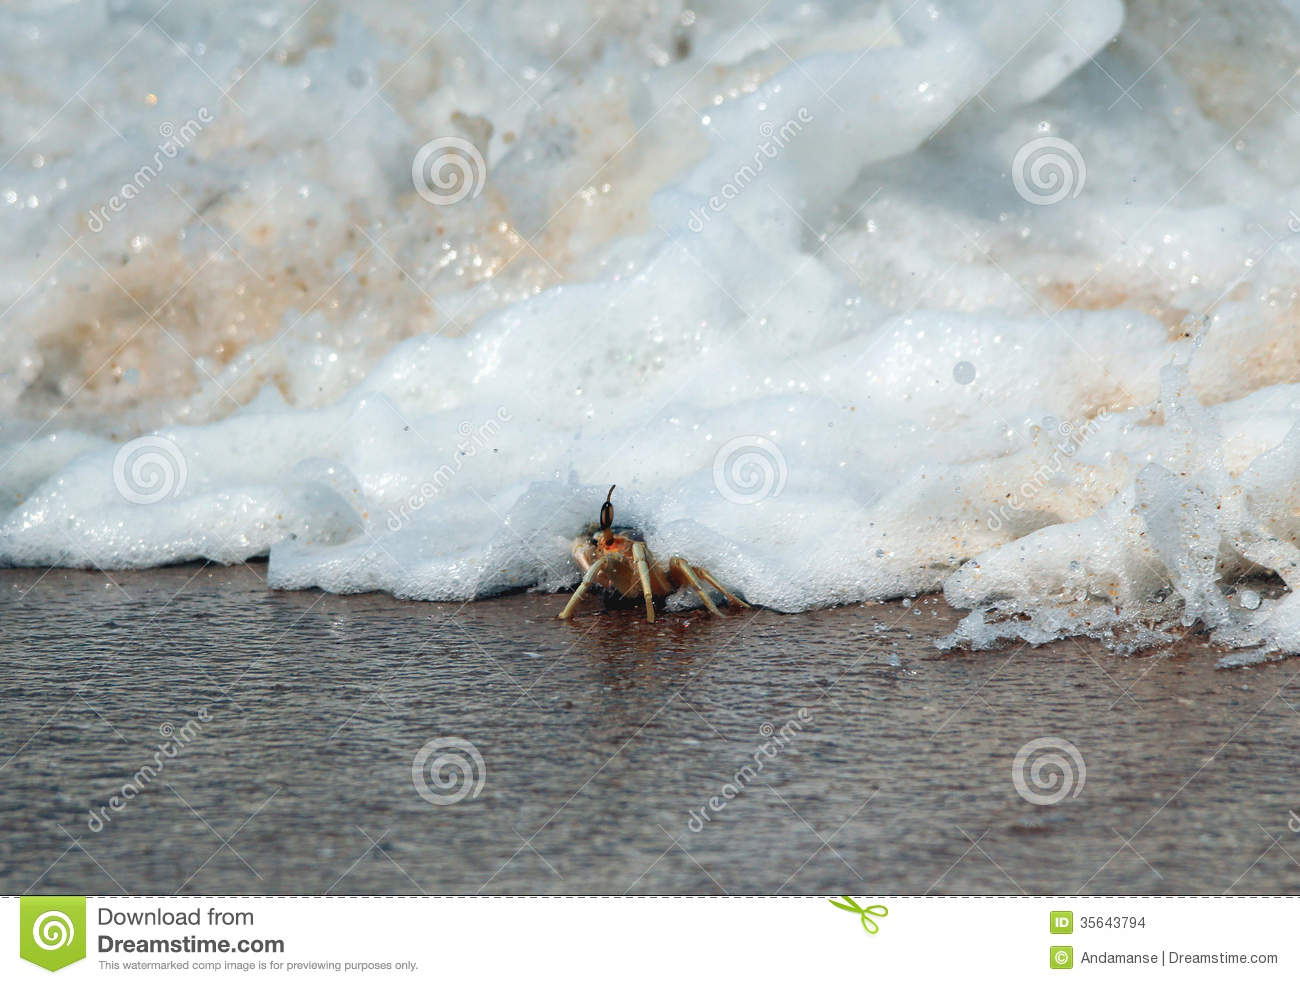 Stock Images Tsunami Tiny Crab Beach Just Getting Hit Wave Yala Sri Lanka Image35643794on Asteroid Impact Tsunami